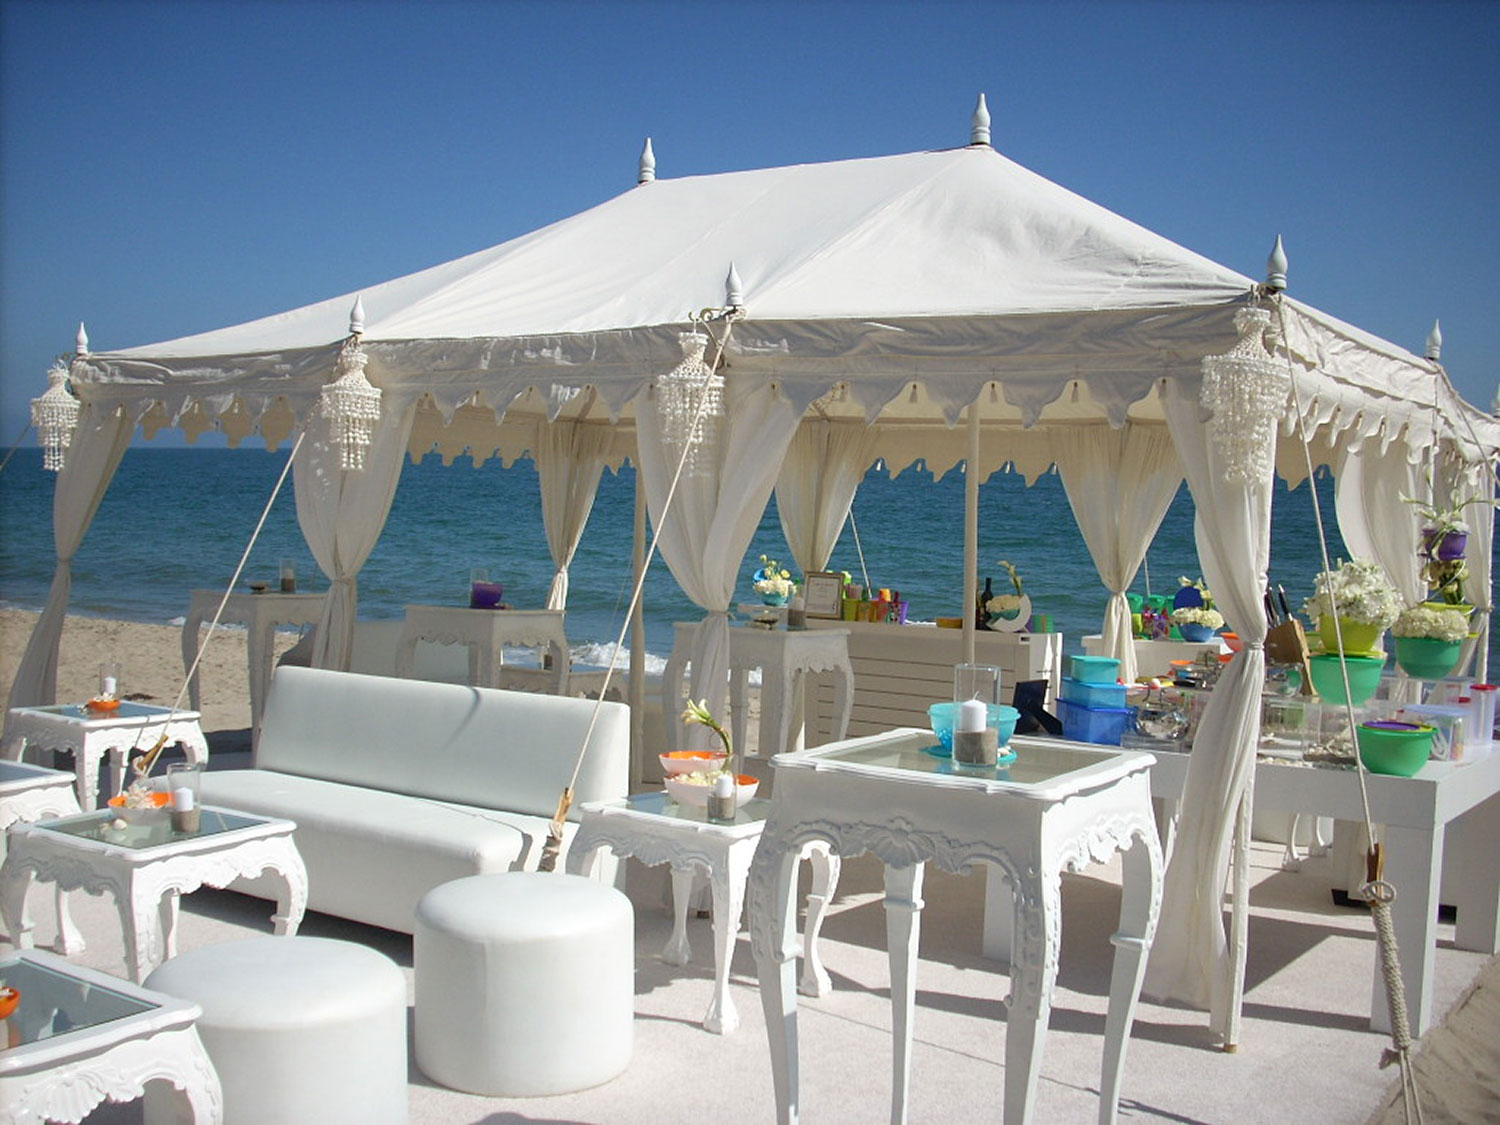 raj-tents-beach-chic-theme-raj.jpg